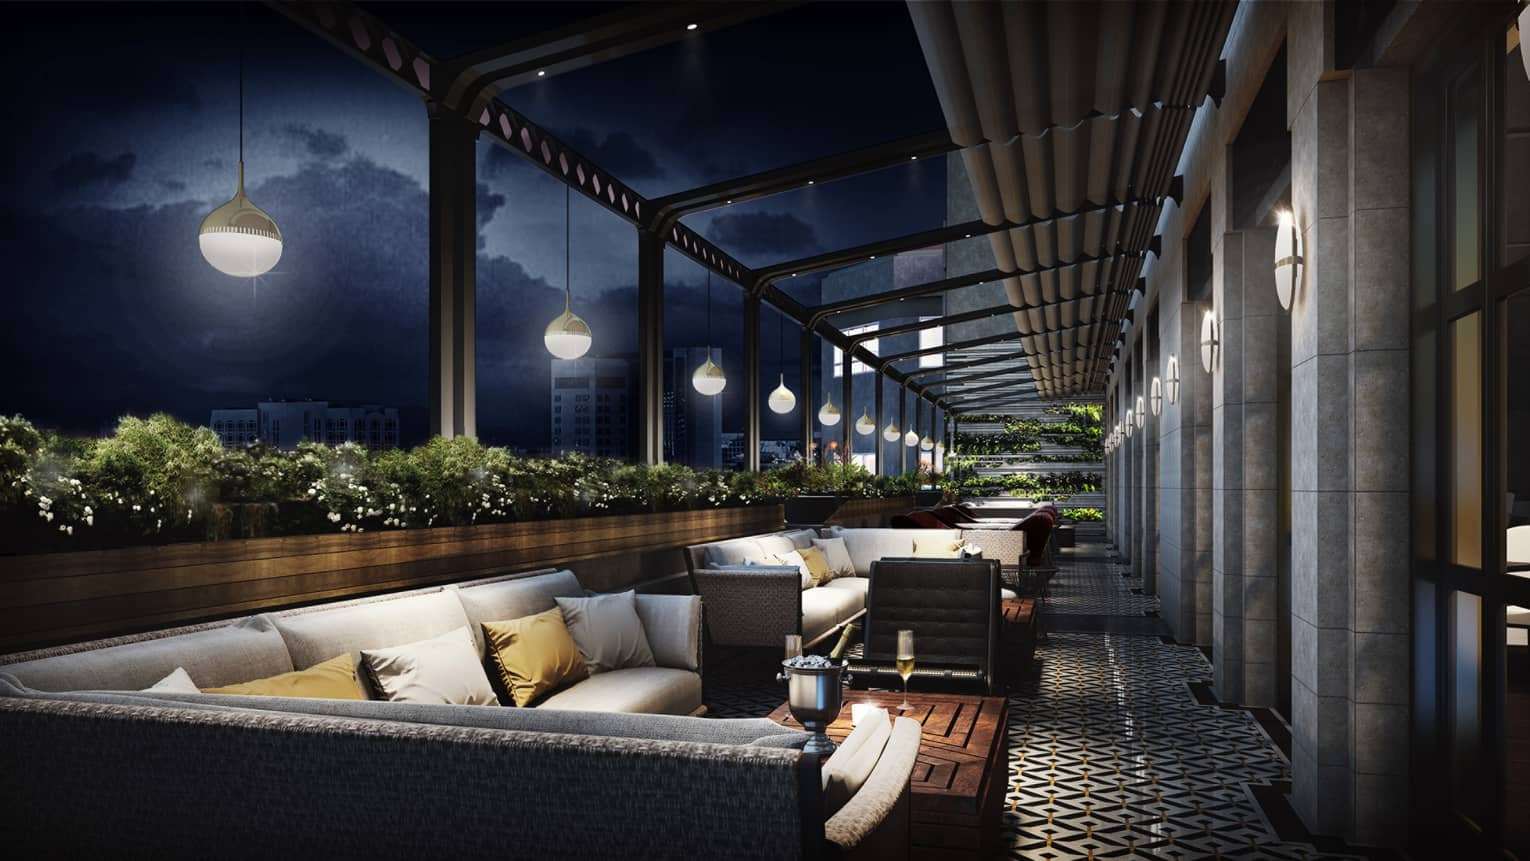 Long patio at night with L-shaped outdoor sofas, pillows, steel bucket with ice, champagne on wood table